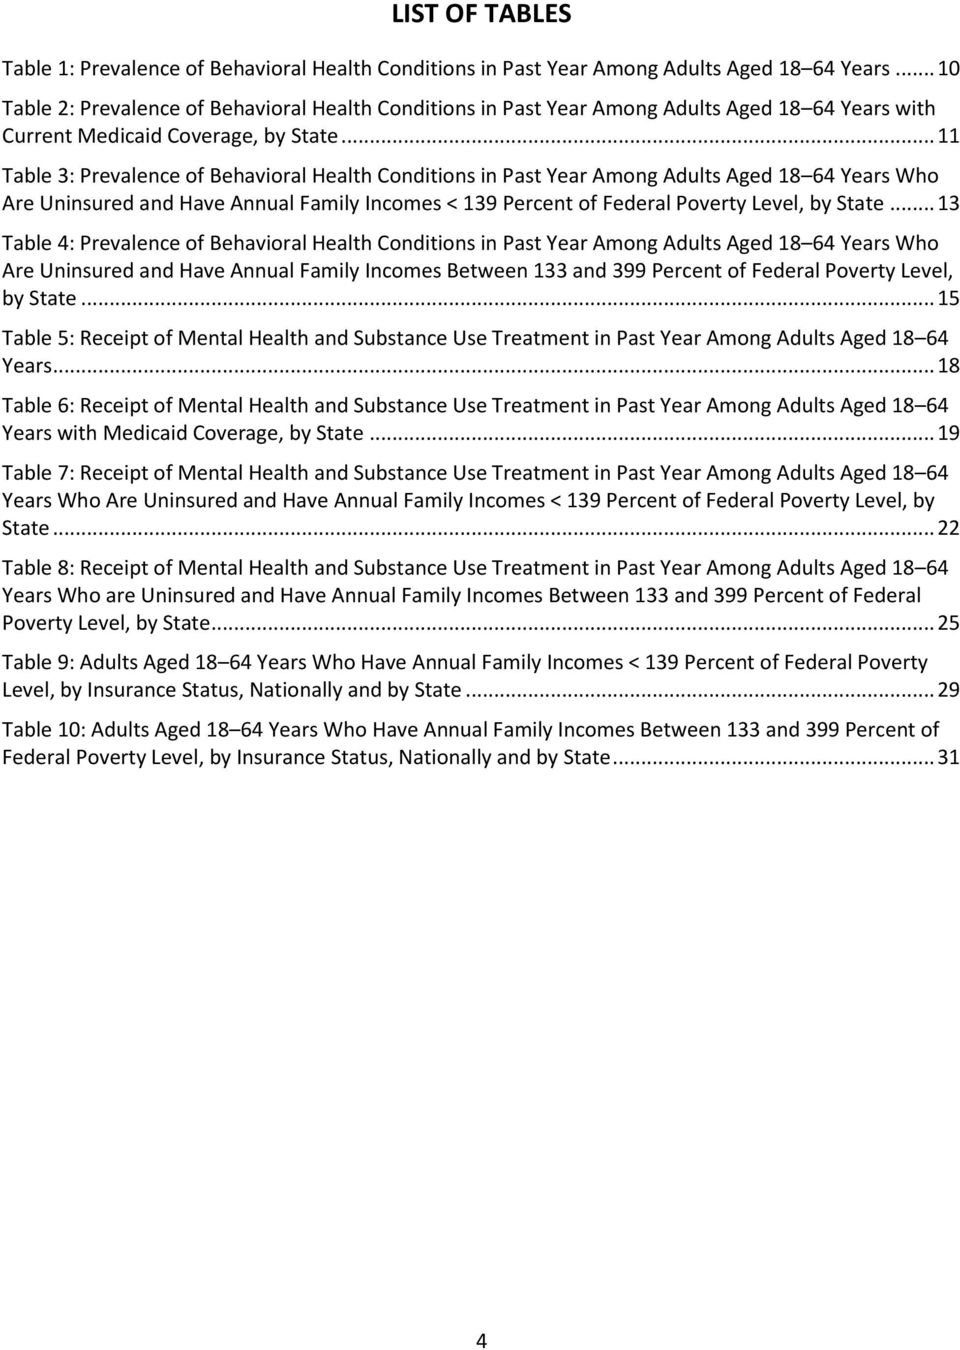 .. 11 Table 3: Prevalence of Behavioral Health Conditions in Past Year Among Adults Aged 18 64 Years Who Are Uninsured and Have Annual Family Incomes < 139 Percent of Federal Poverty Level, by State.